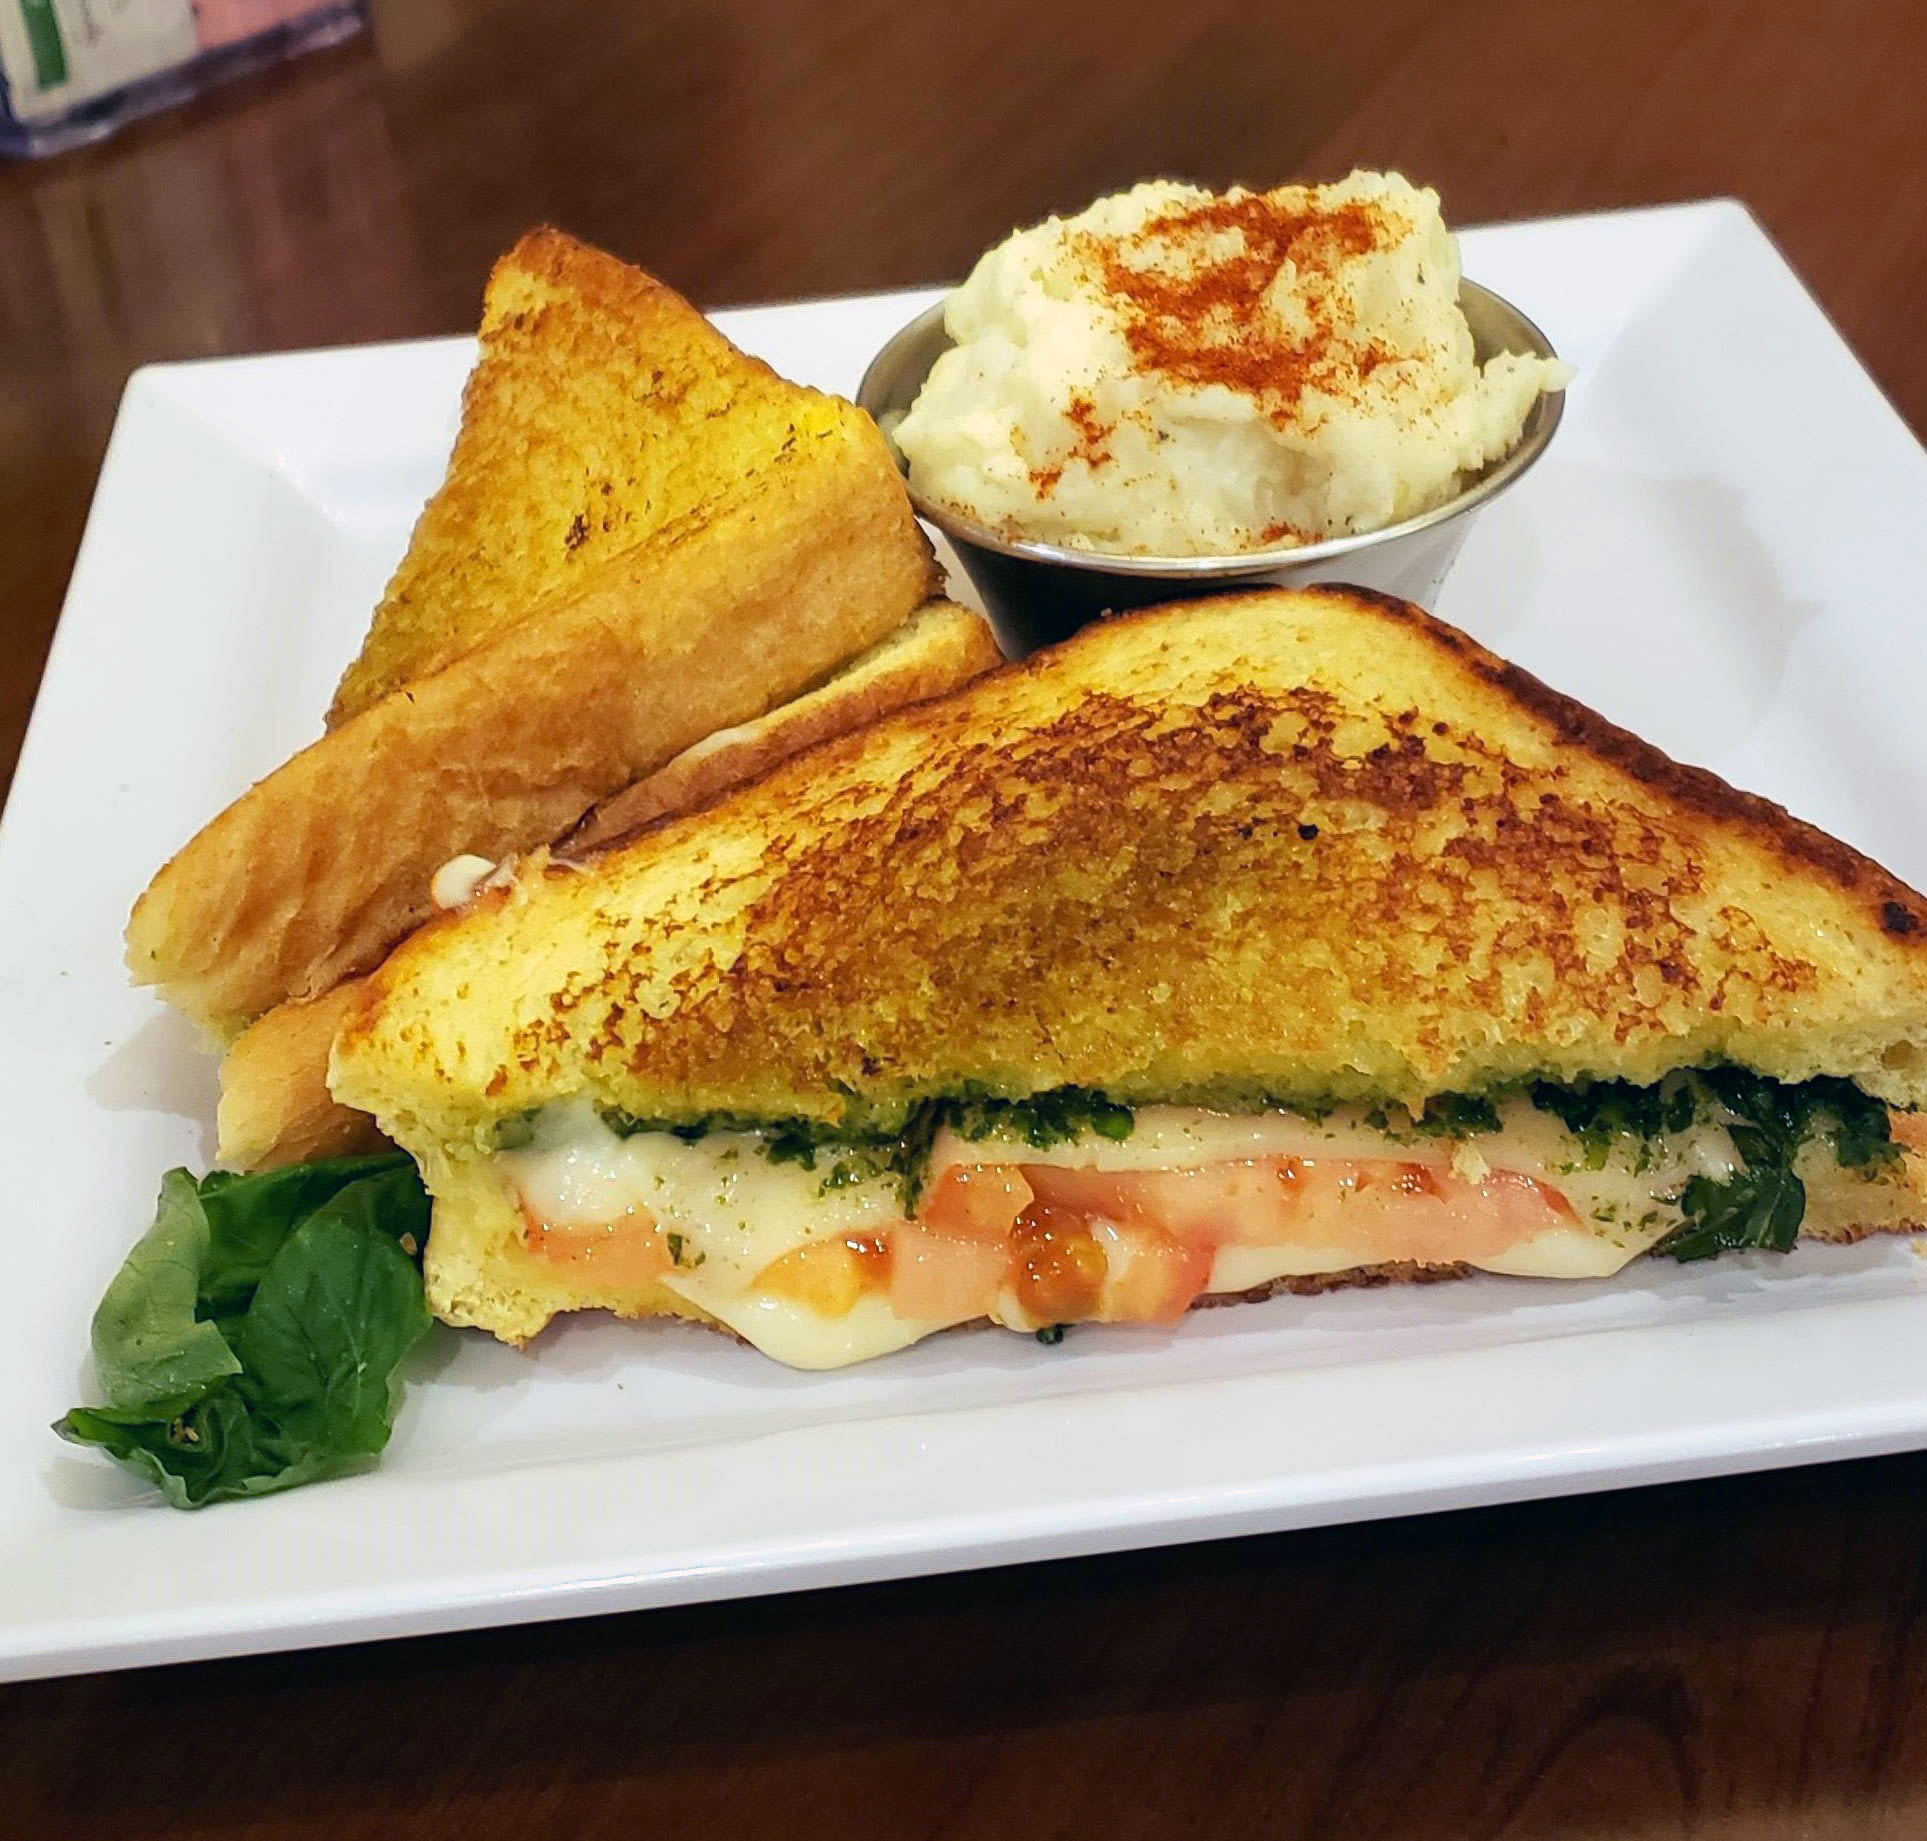 Pesto Grilled Cheese Sandwich at Blossom Vale Senior Living